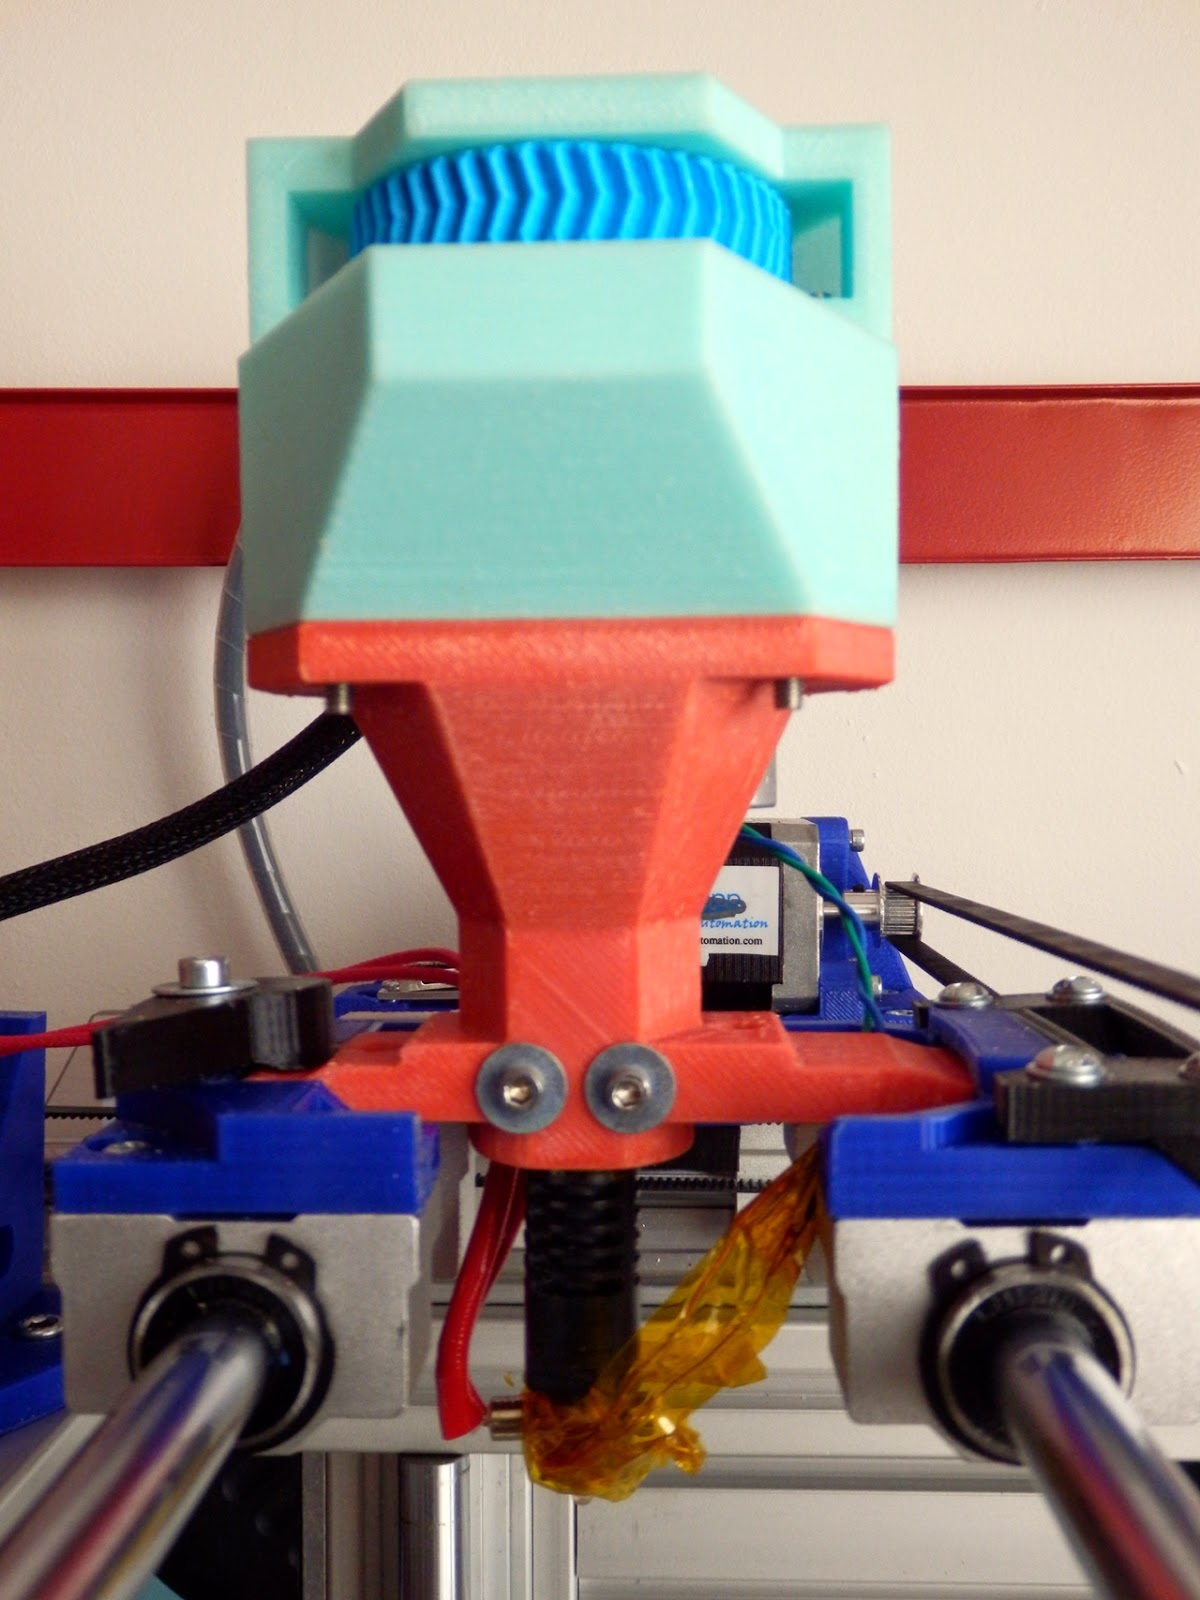 Reprap Development And Further Adventures In Diy 3d Printing No More Filament Quest For A Universal Pellet Extruder For 3d Printing